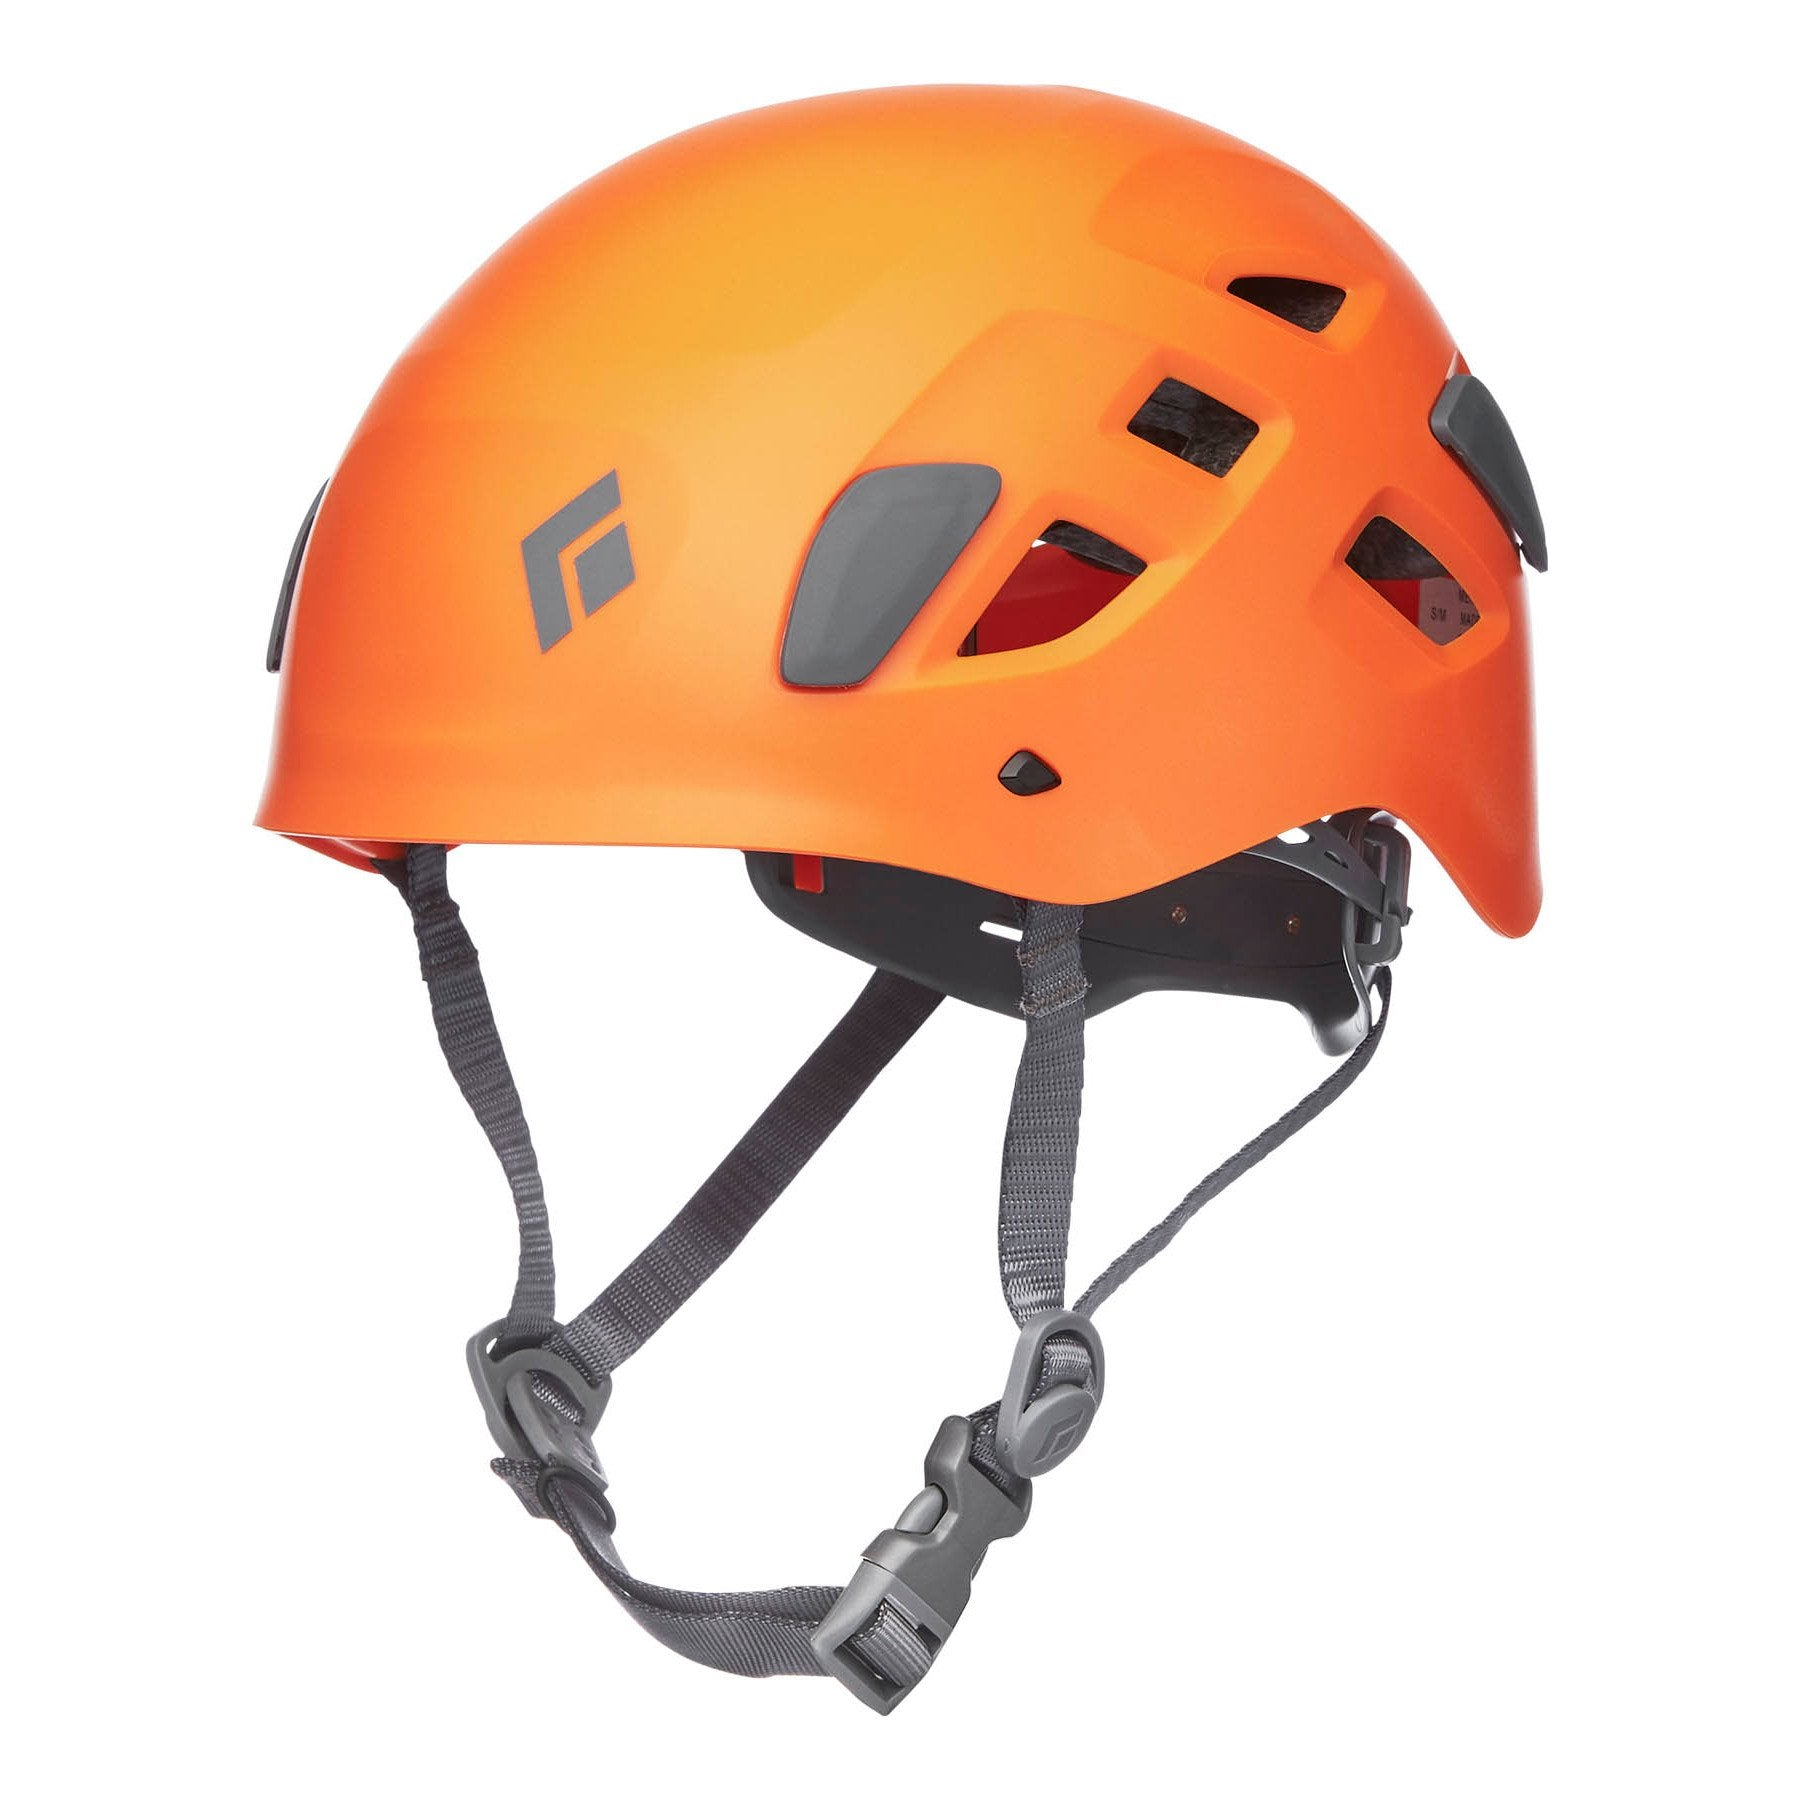 Black Diamond Half Dome climbing helmet, front/side view in orange colour with grey chin strap